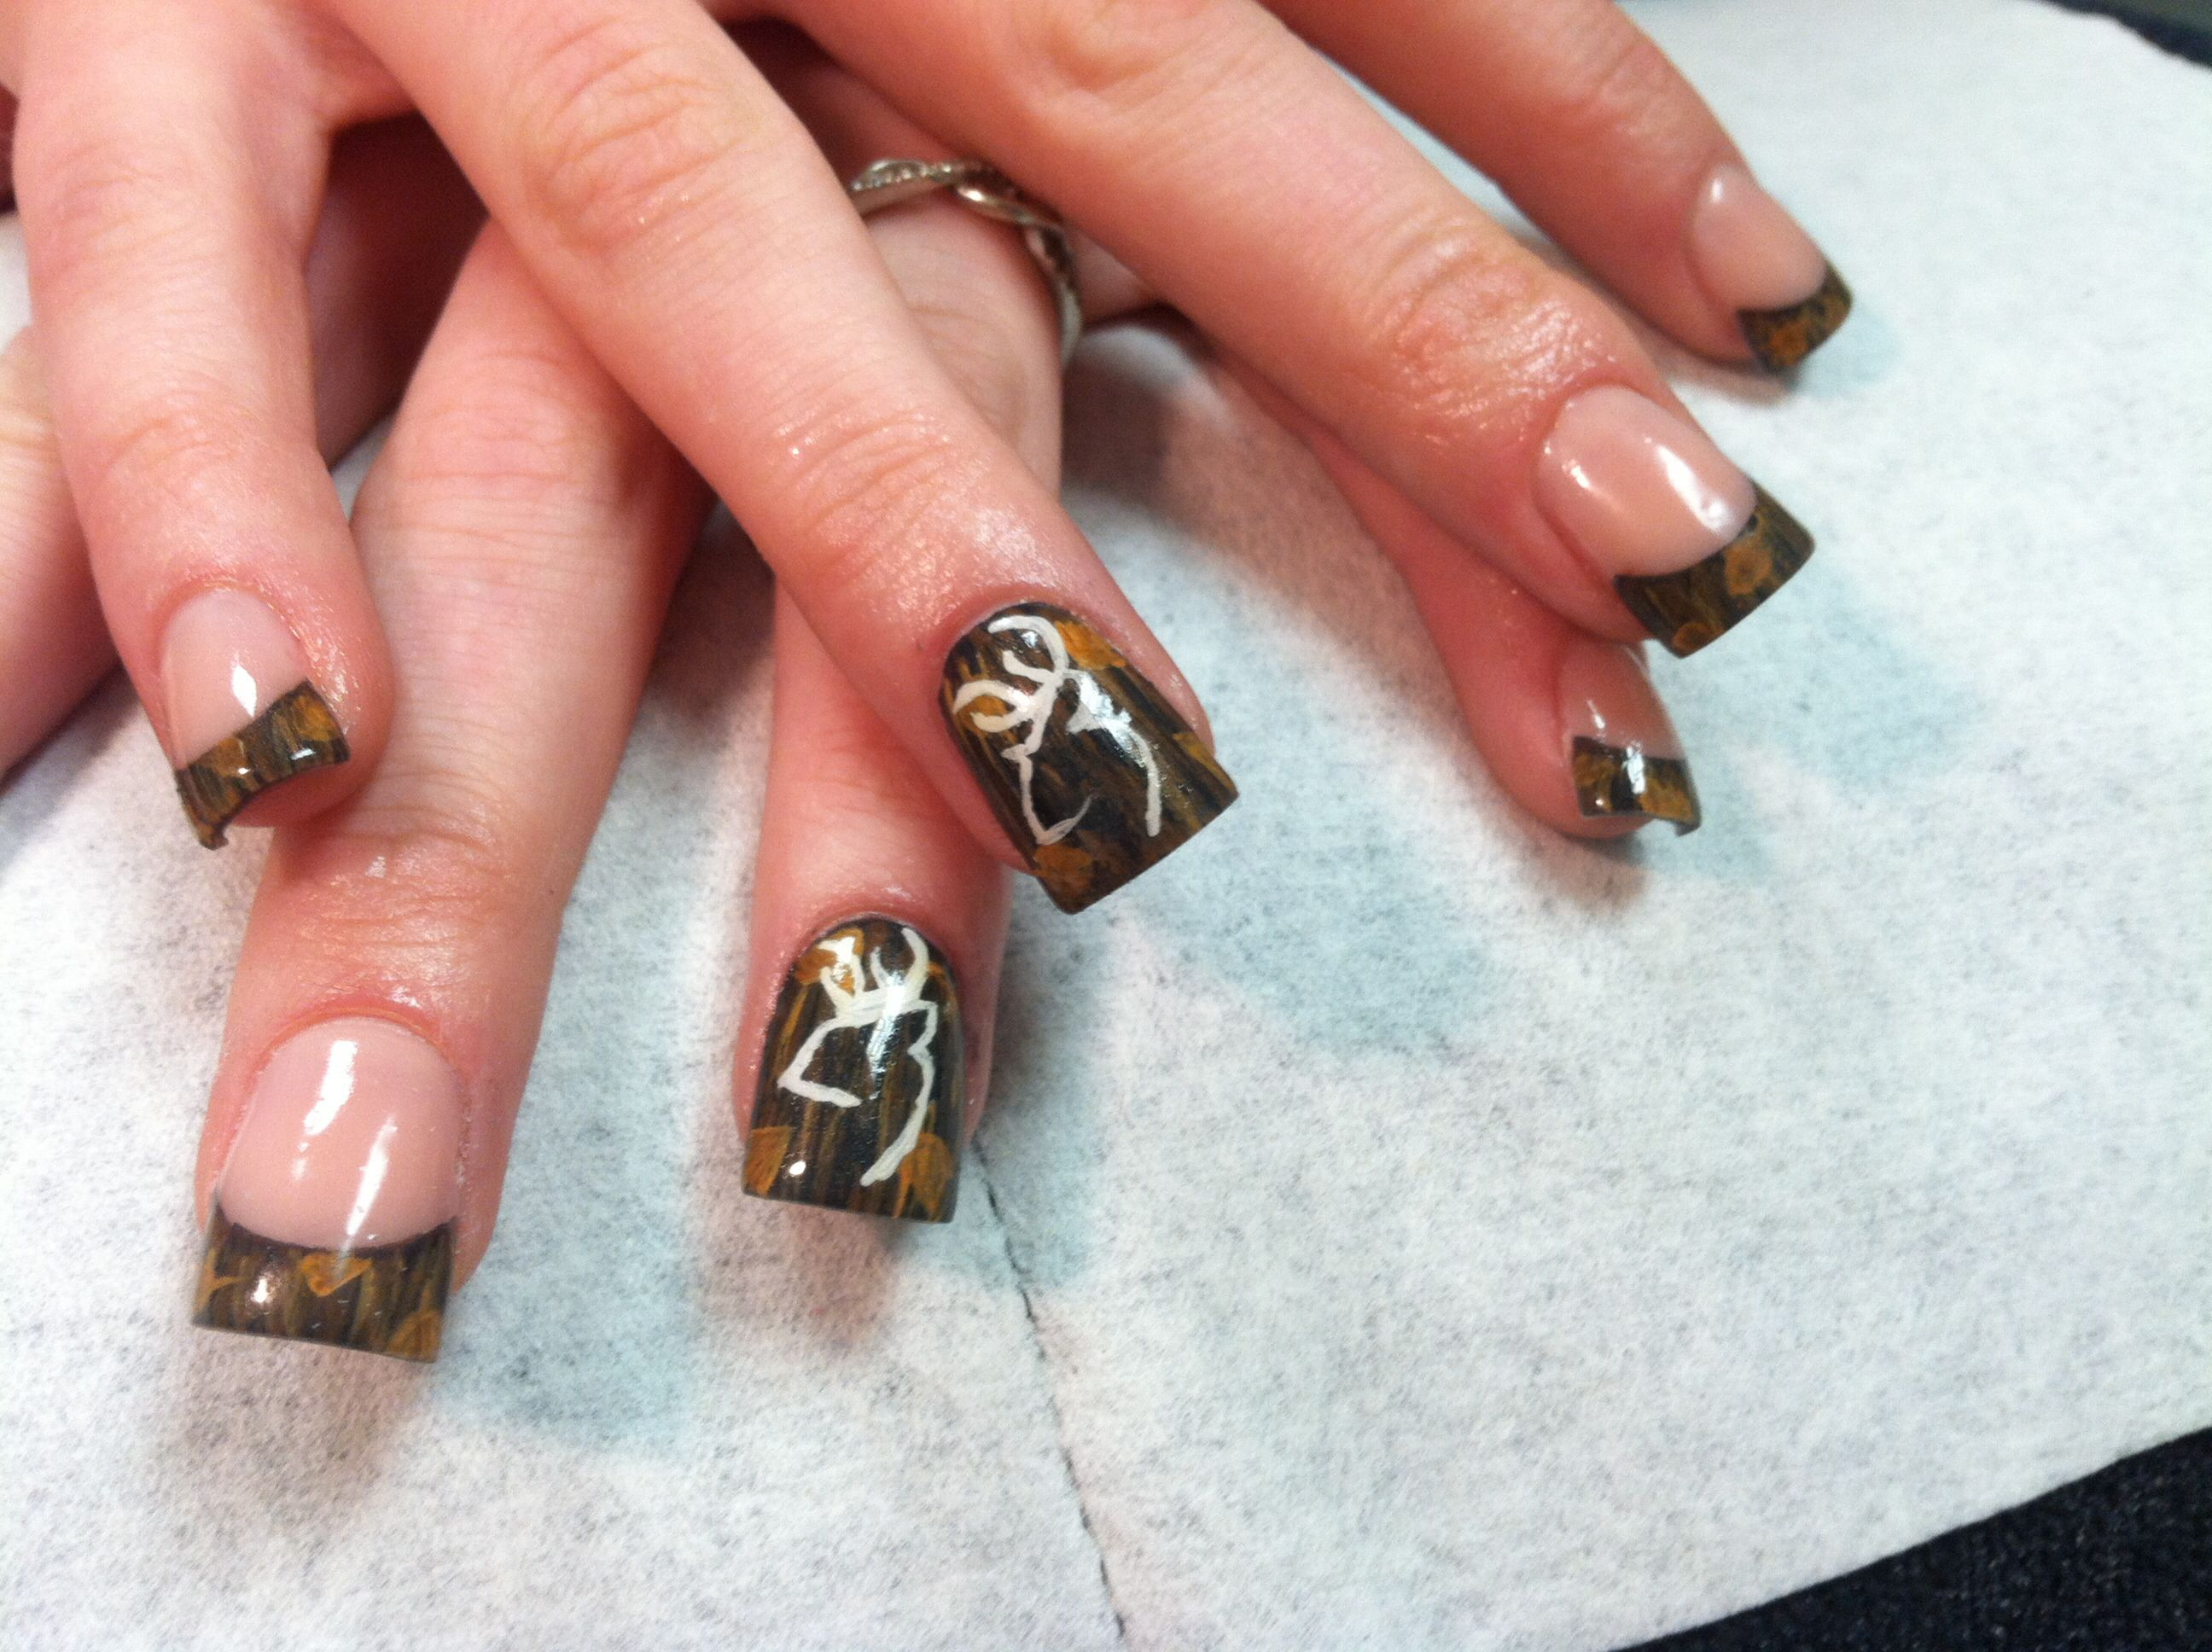 Mossy oak camouflage acrylic nails. Hand painted. | My acrylic nails ...